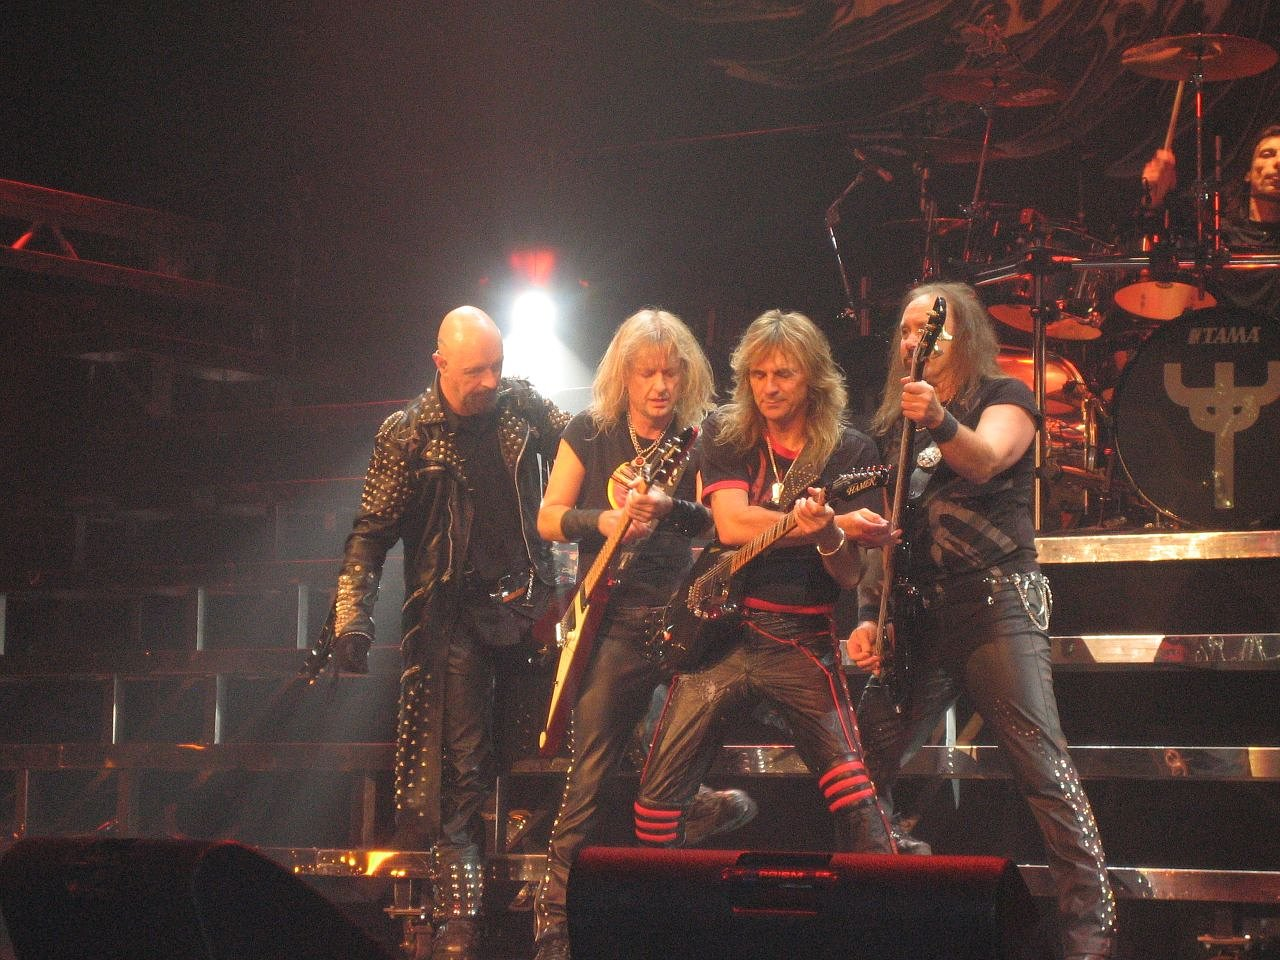 http://inquisidor71.files.wordpress.com/2008/11/judas_priest_retribution_2005_tour.jpg